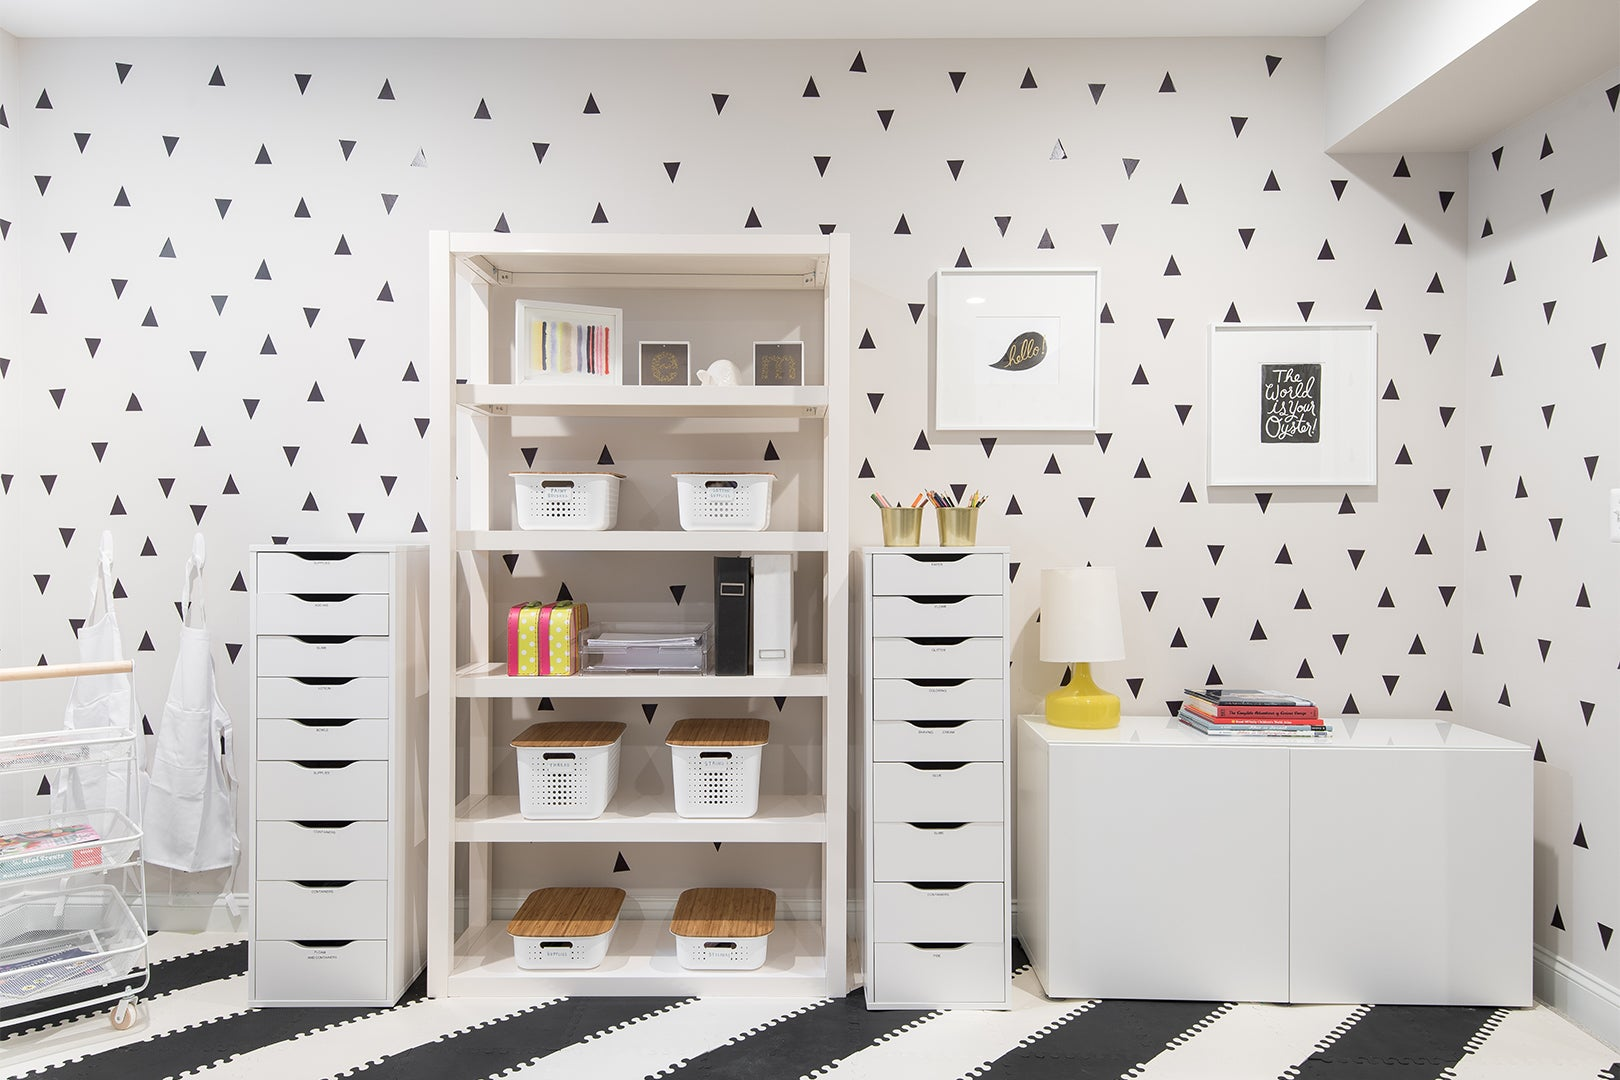 black and white wallpaper and shelves fro kids crafts